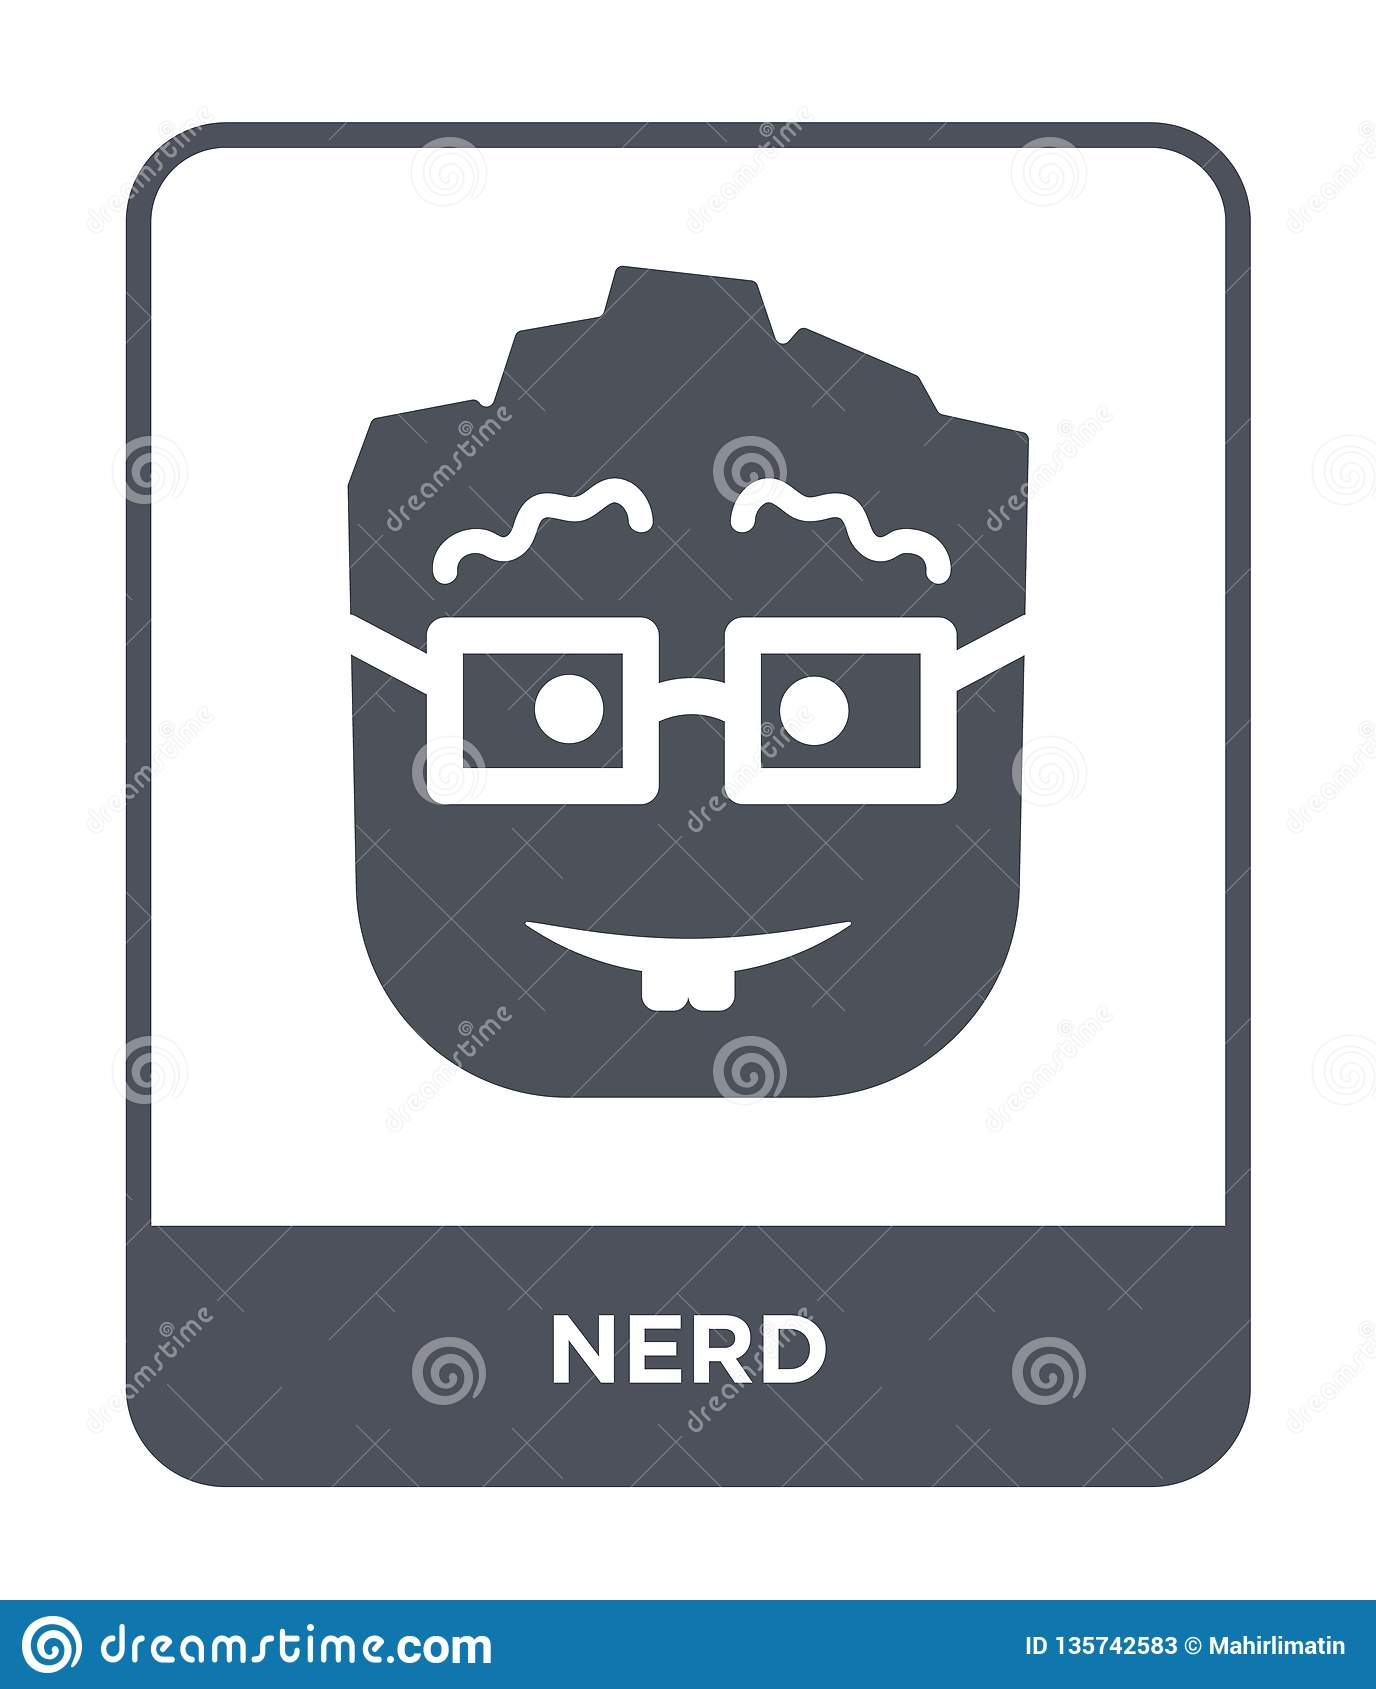 nerd icon in trendy design style. nerd icon isolated on white background. nerd vector icon simple and modern flat symbol for web